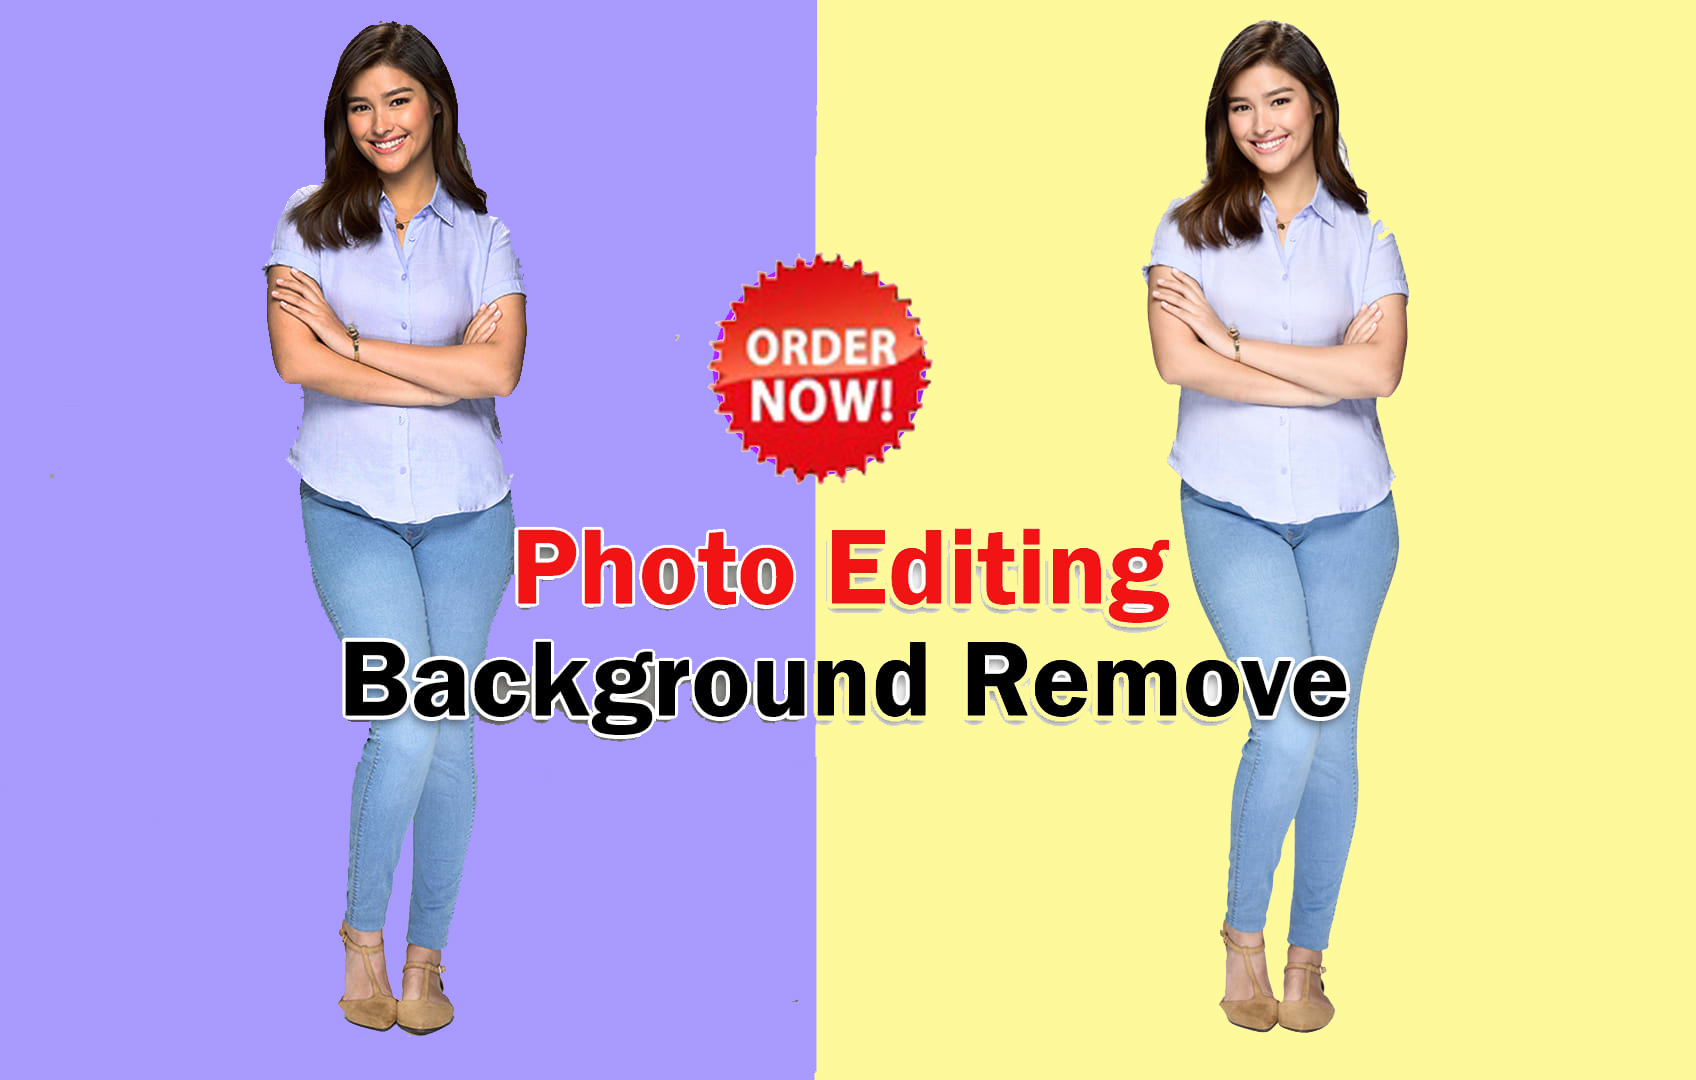 cut out or background removal 10 images